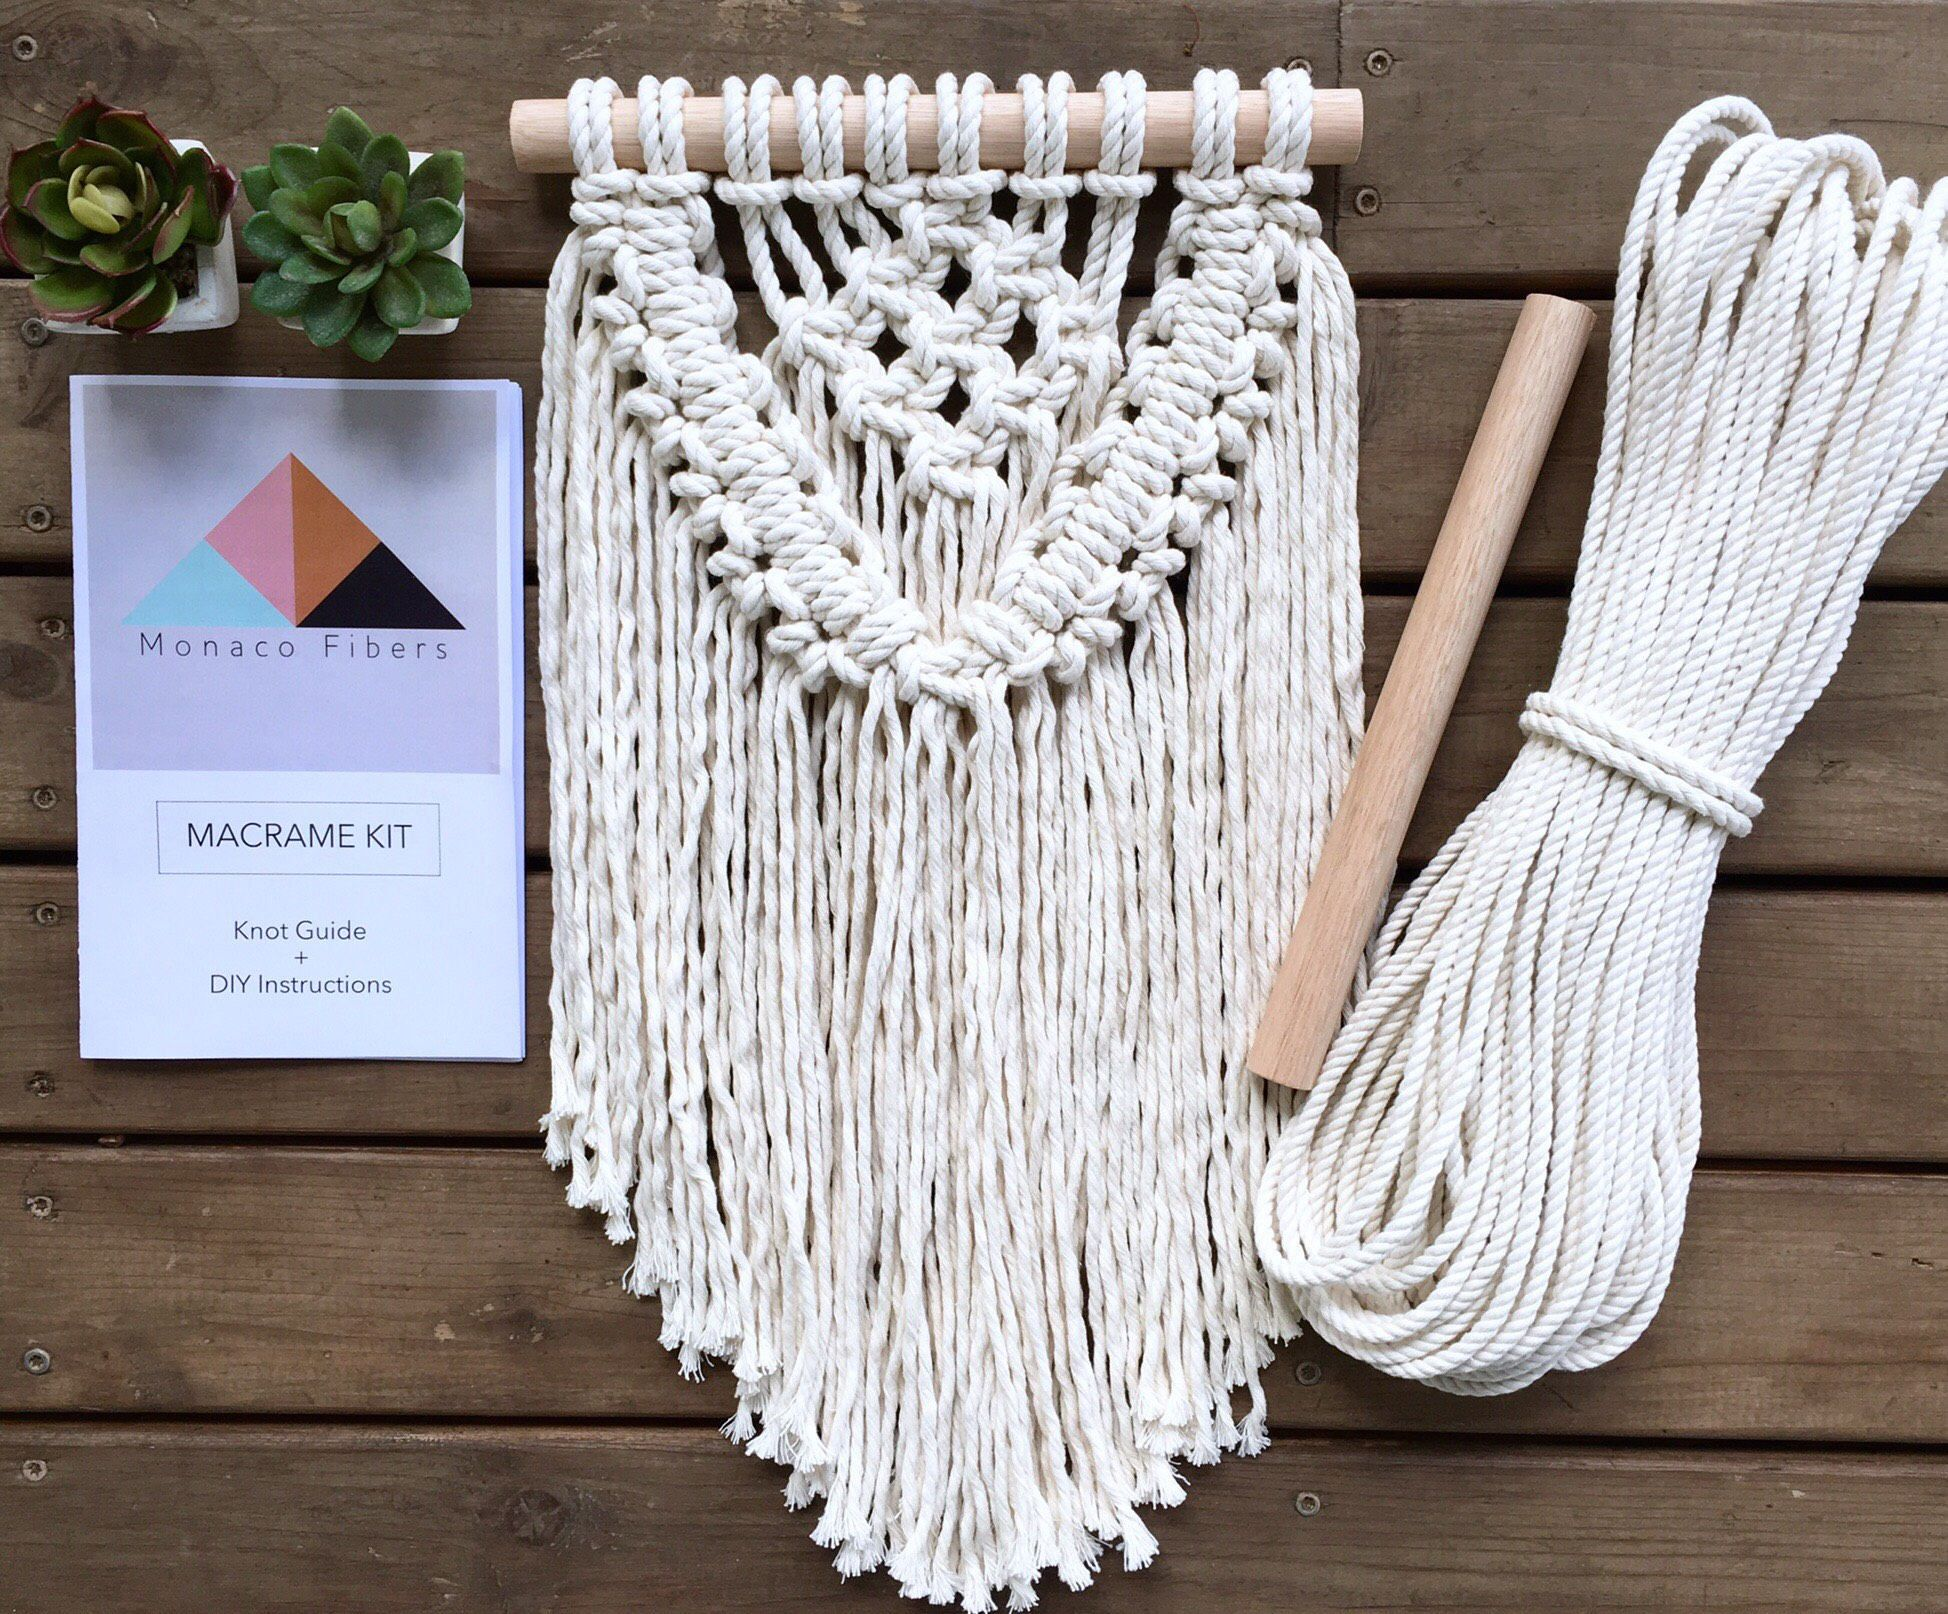 Diy Kit Macrame Kit Free Shipping In Us Macrame Diy